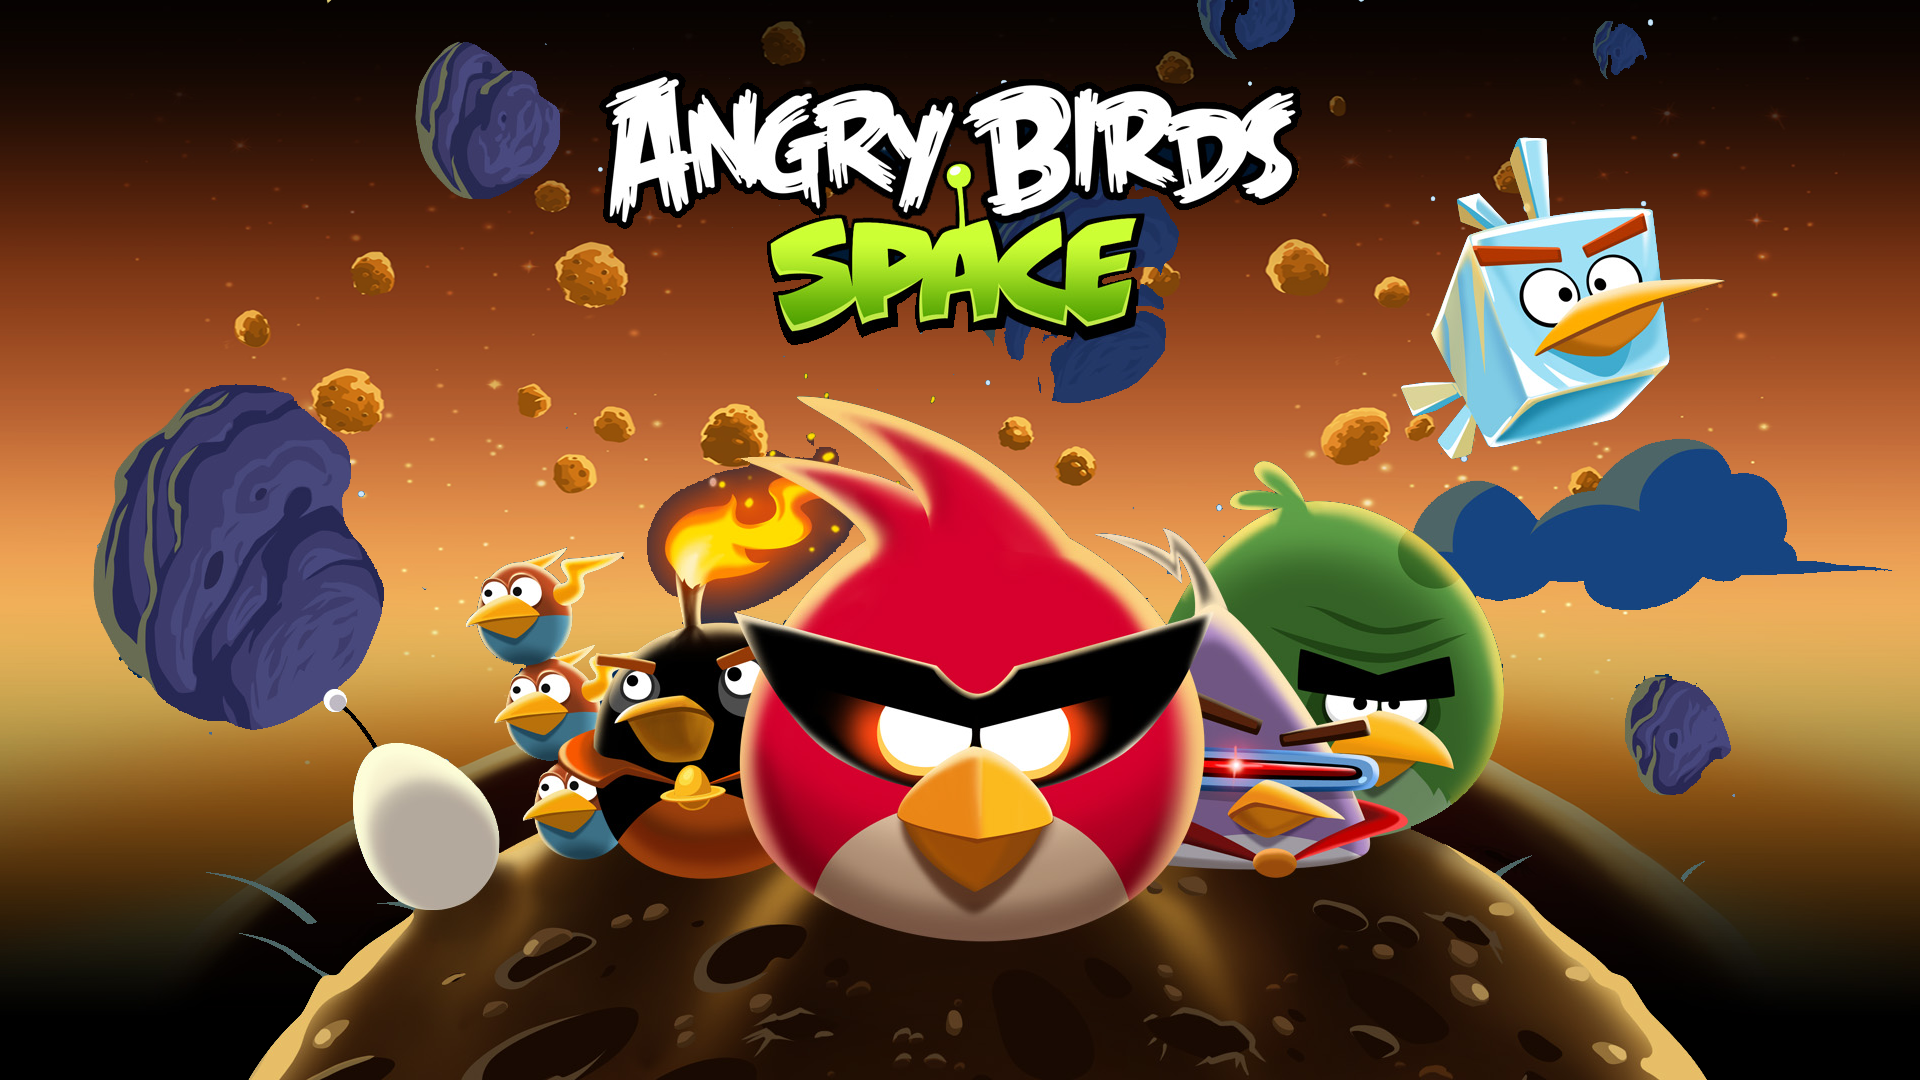 Angry Birds Space Wallpapers Video Game HQ Angry Birds